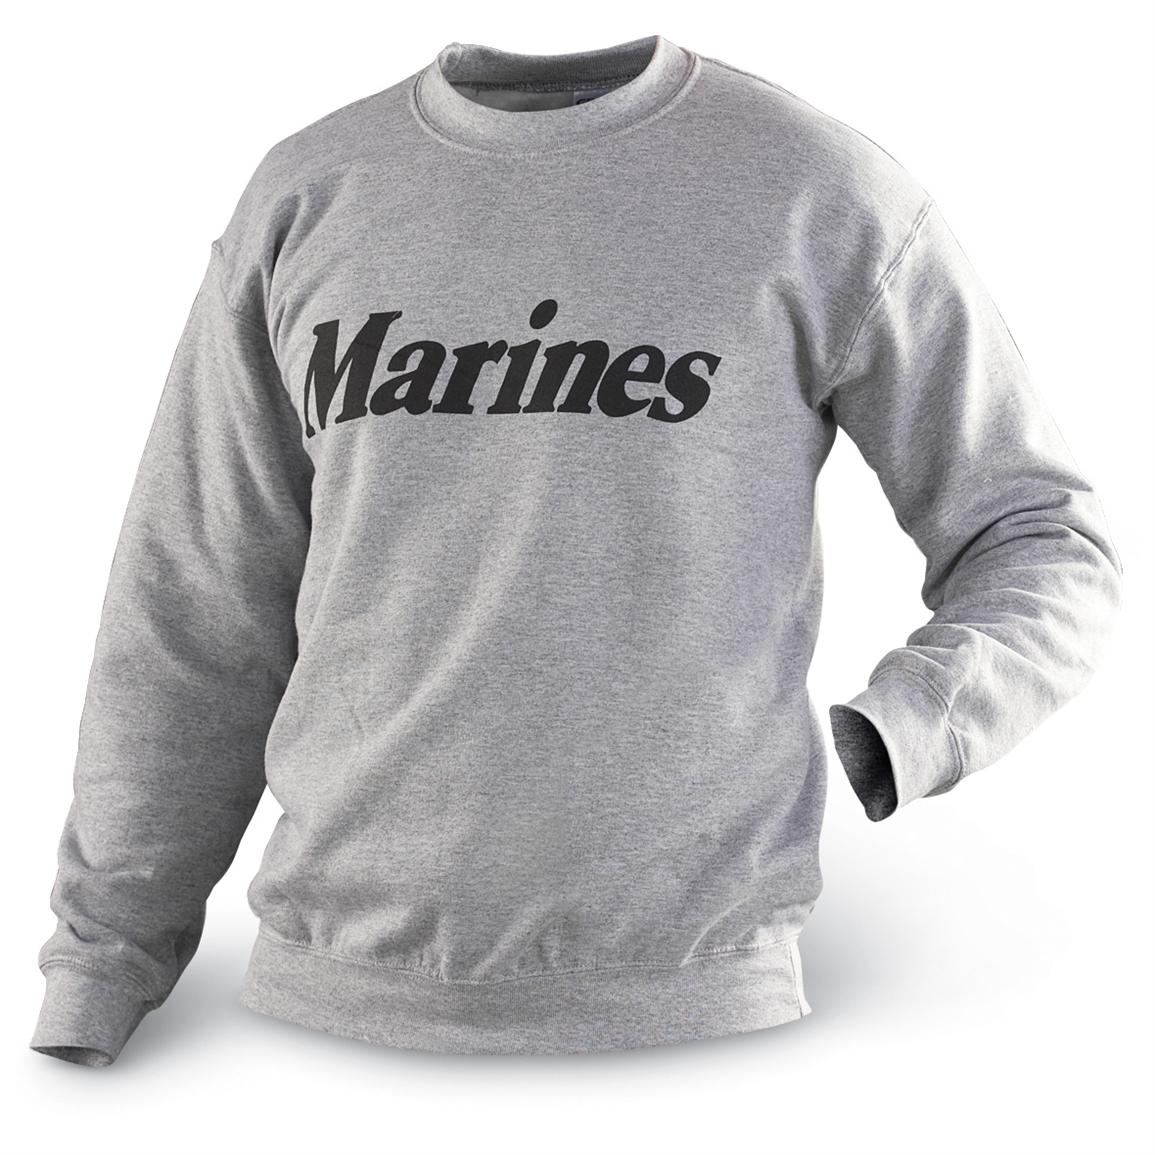 Military-style Service Branch Sweatshirt, Marines